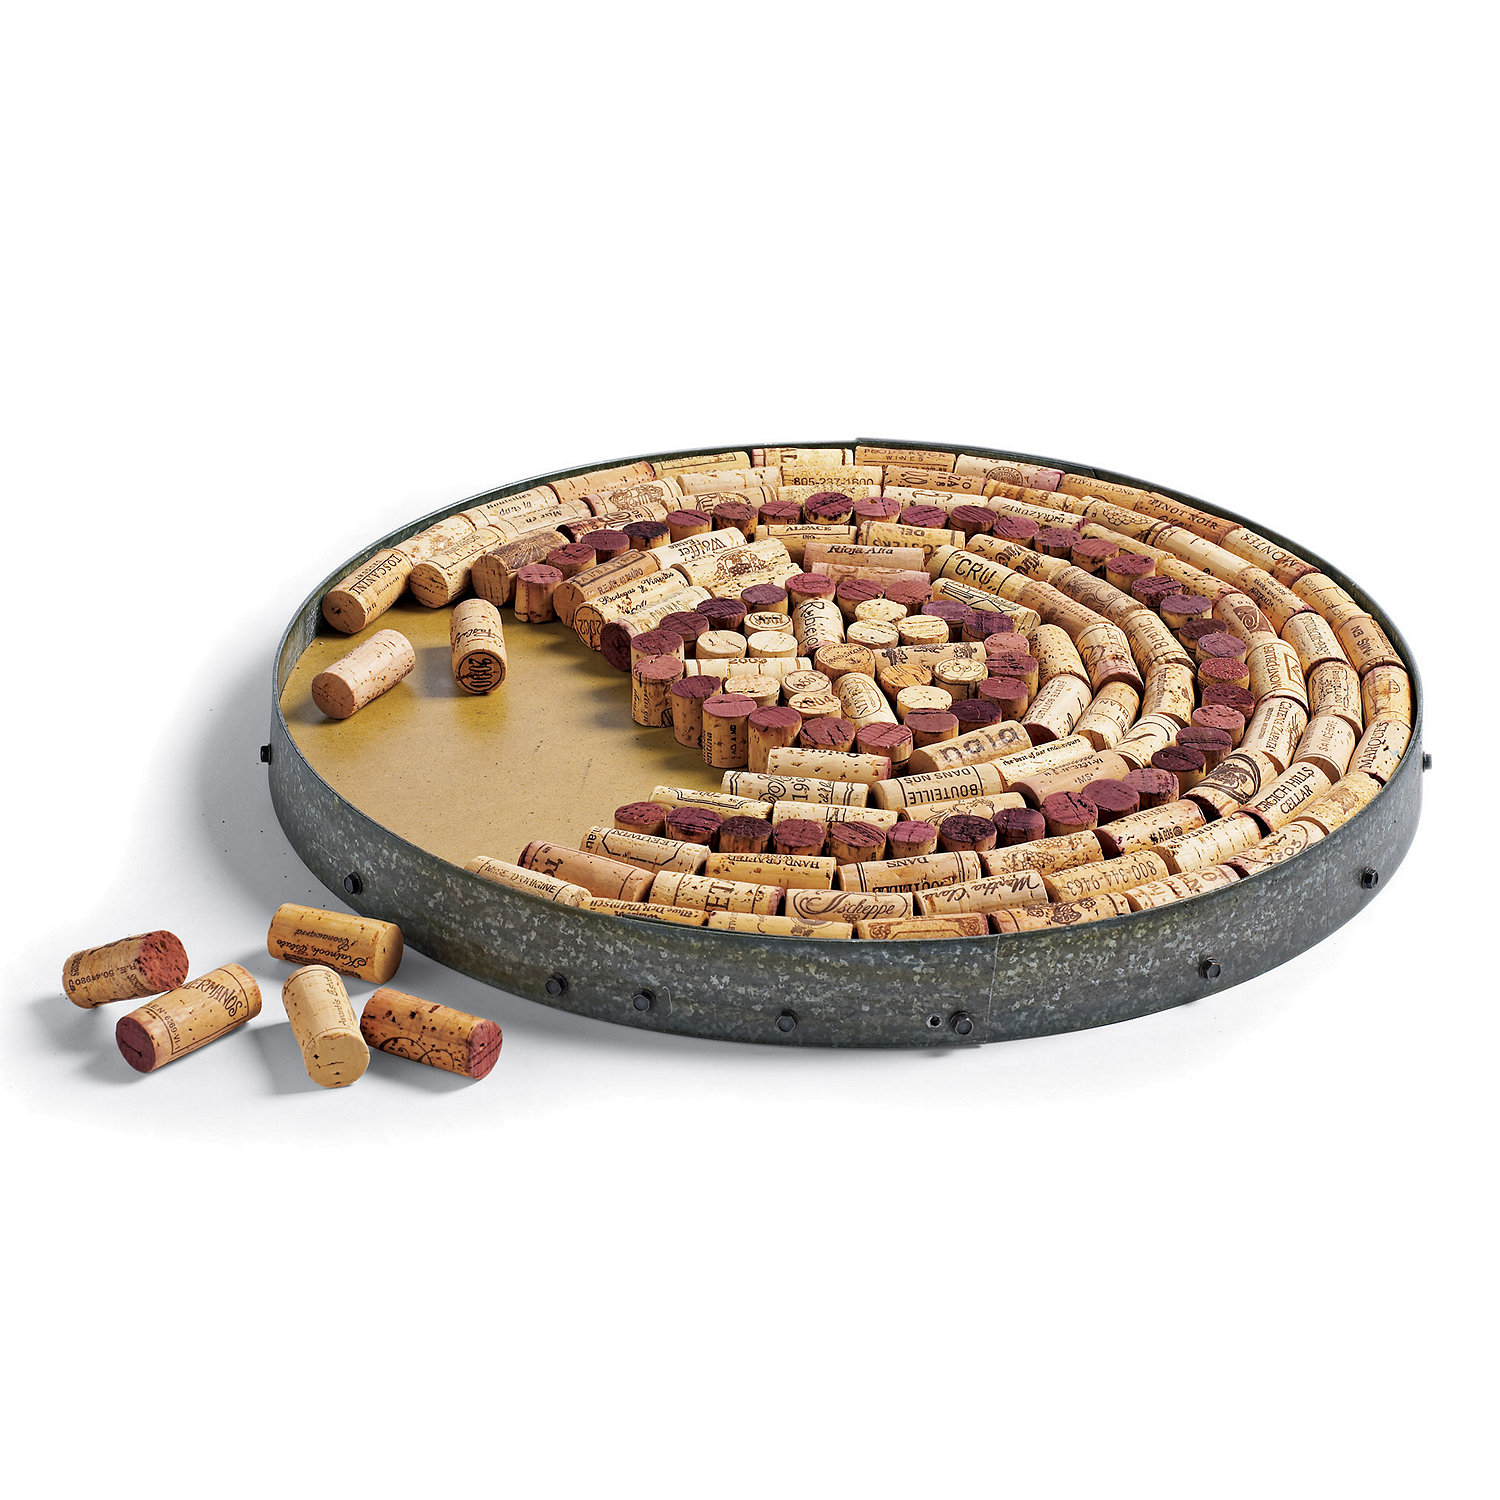 Fantastic wine barrel lazy susan for furniture accessories ideas with personalized wine barrel lazy susan